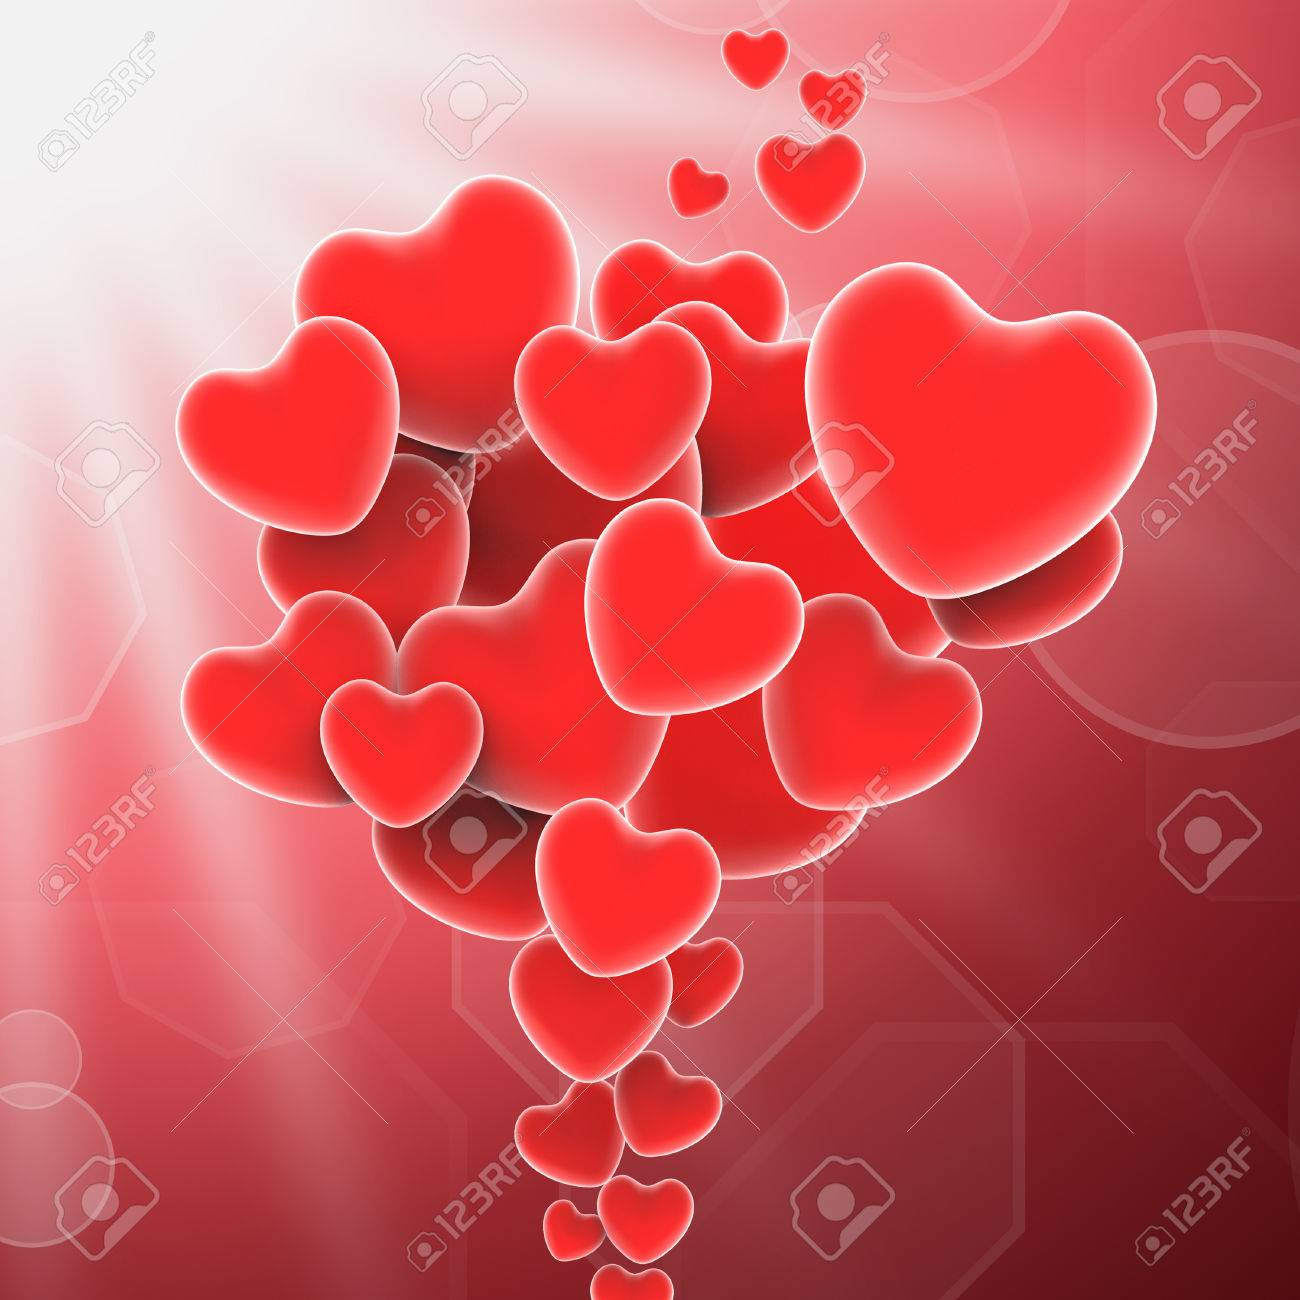 Bunch Of Hearts Means Sweet Love Or Romantic Couple Stock Photo